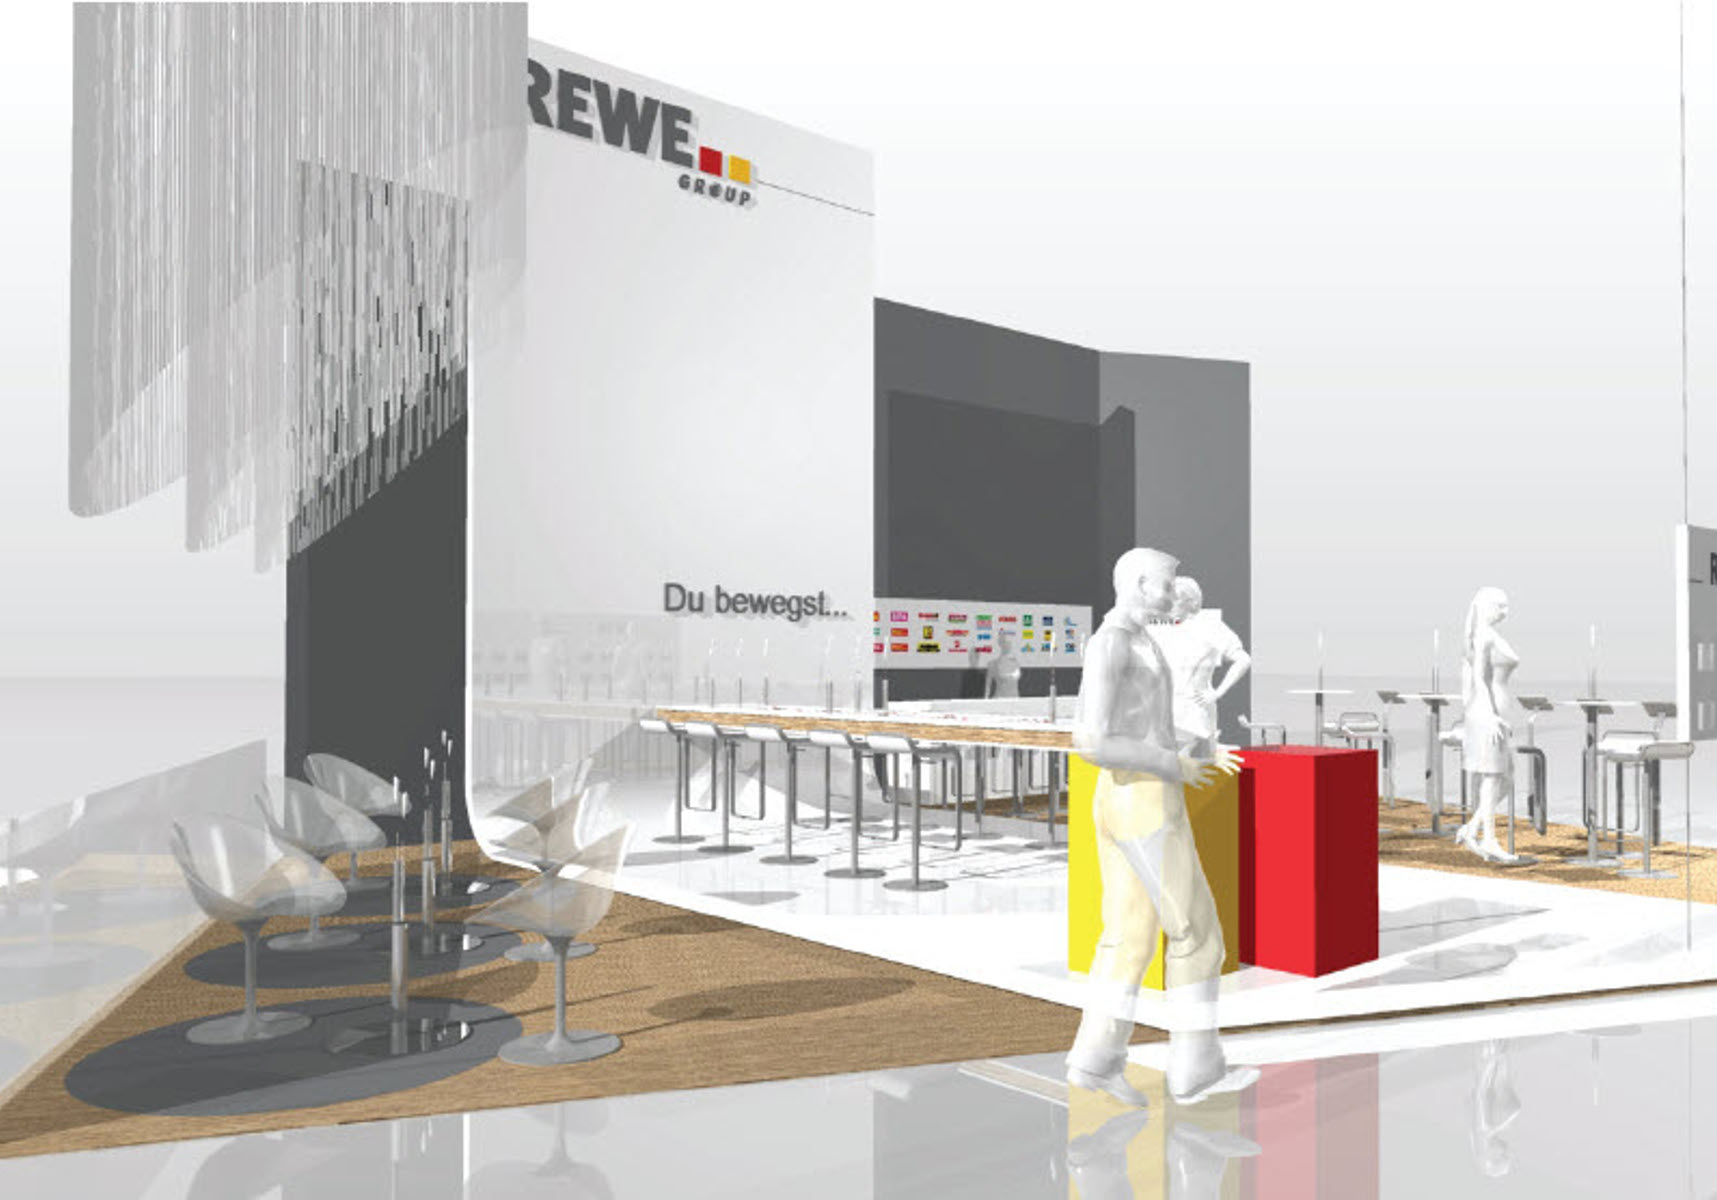 REWE Messestand - Absolventen Messe Visualisierung 2